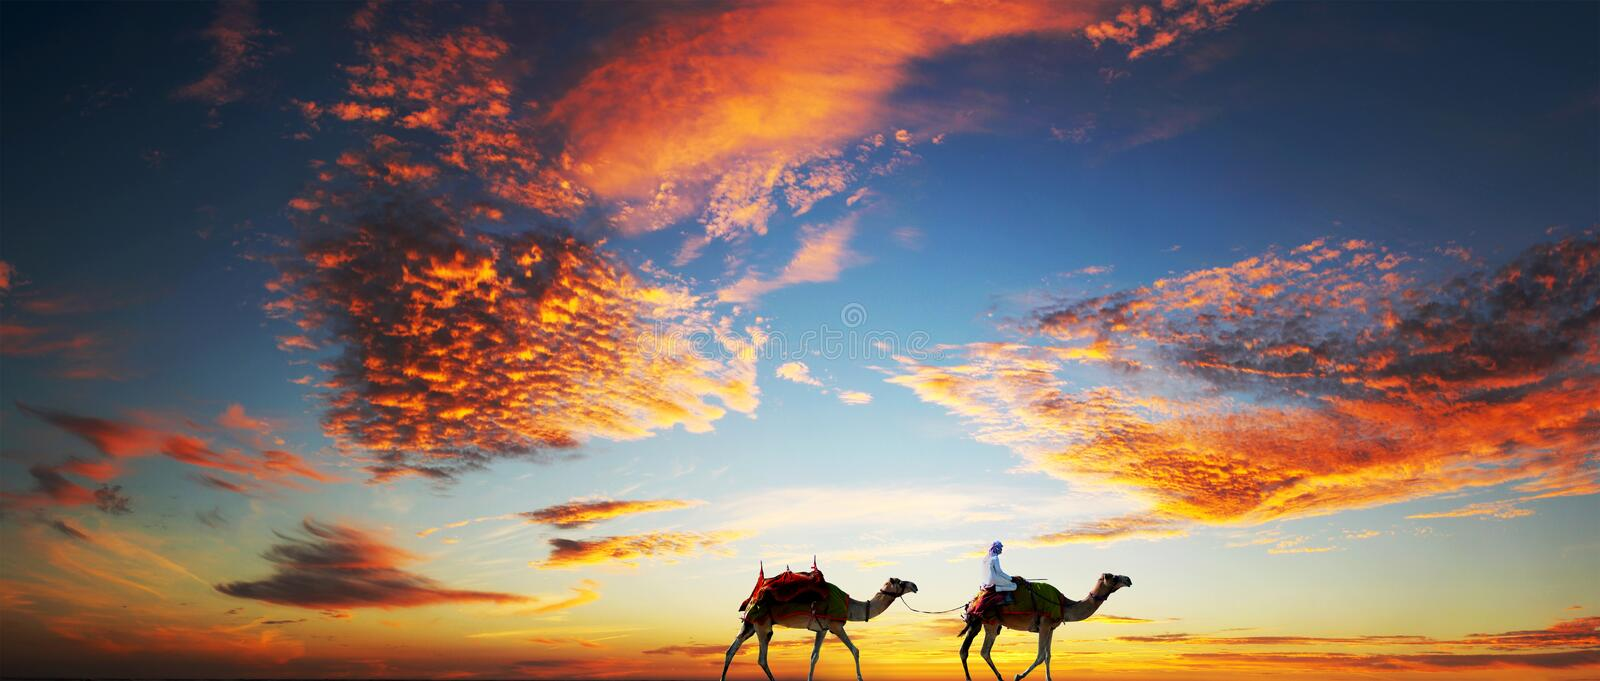 Download Camels On A Dubai Beach Under A Dramatic Sky Stock Image - Image of colorful, ethereal: 91957765